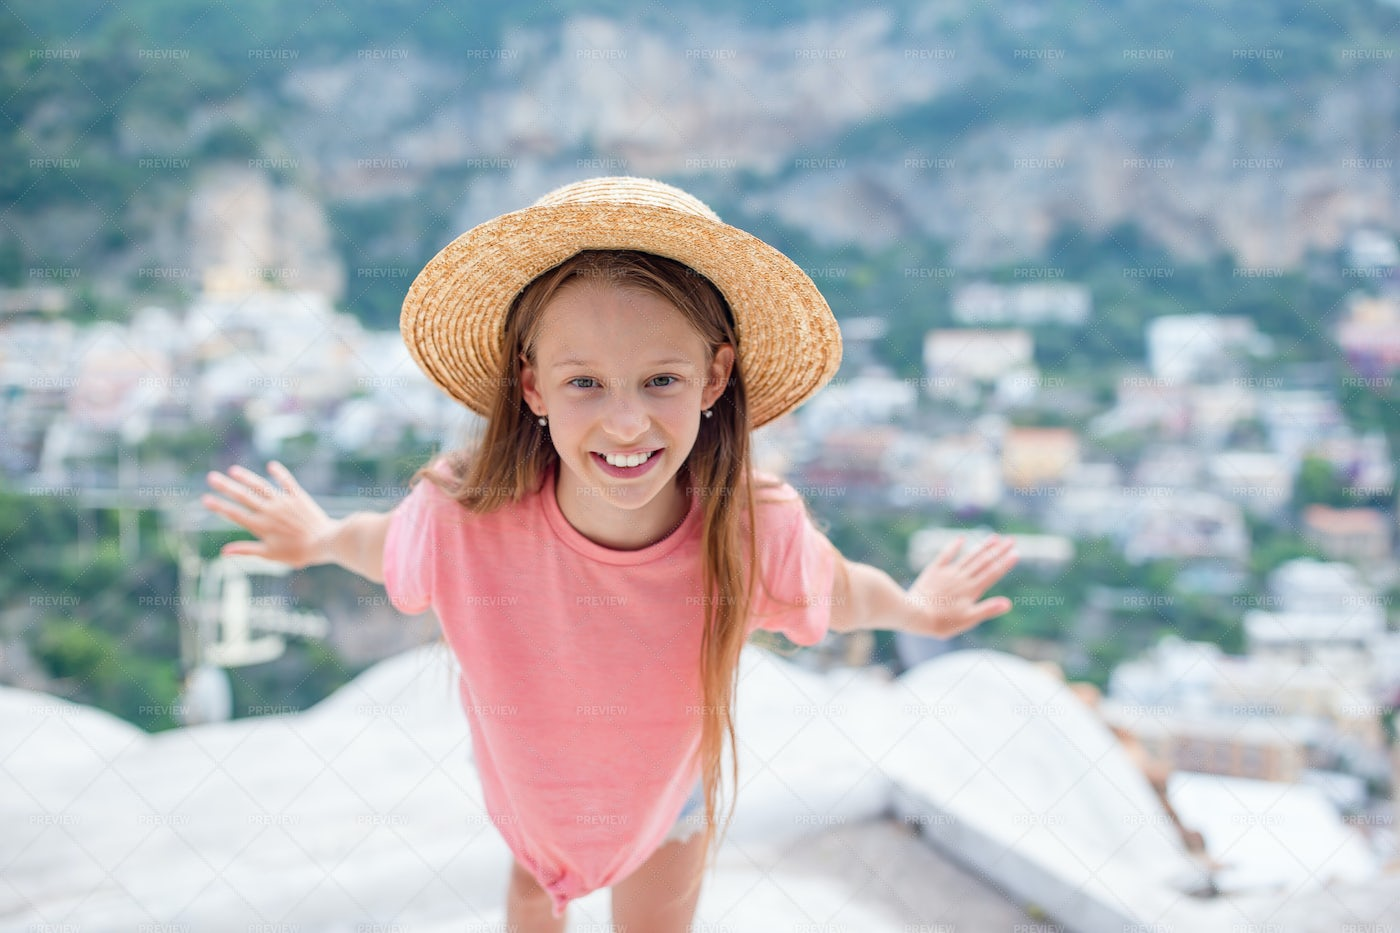 On The Rooftops: Stock Photos